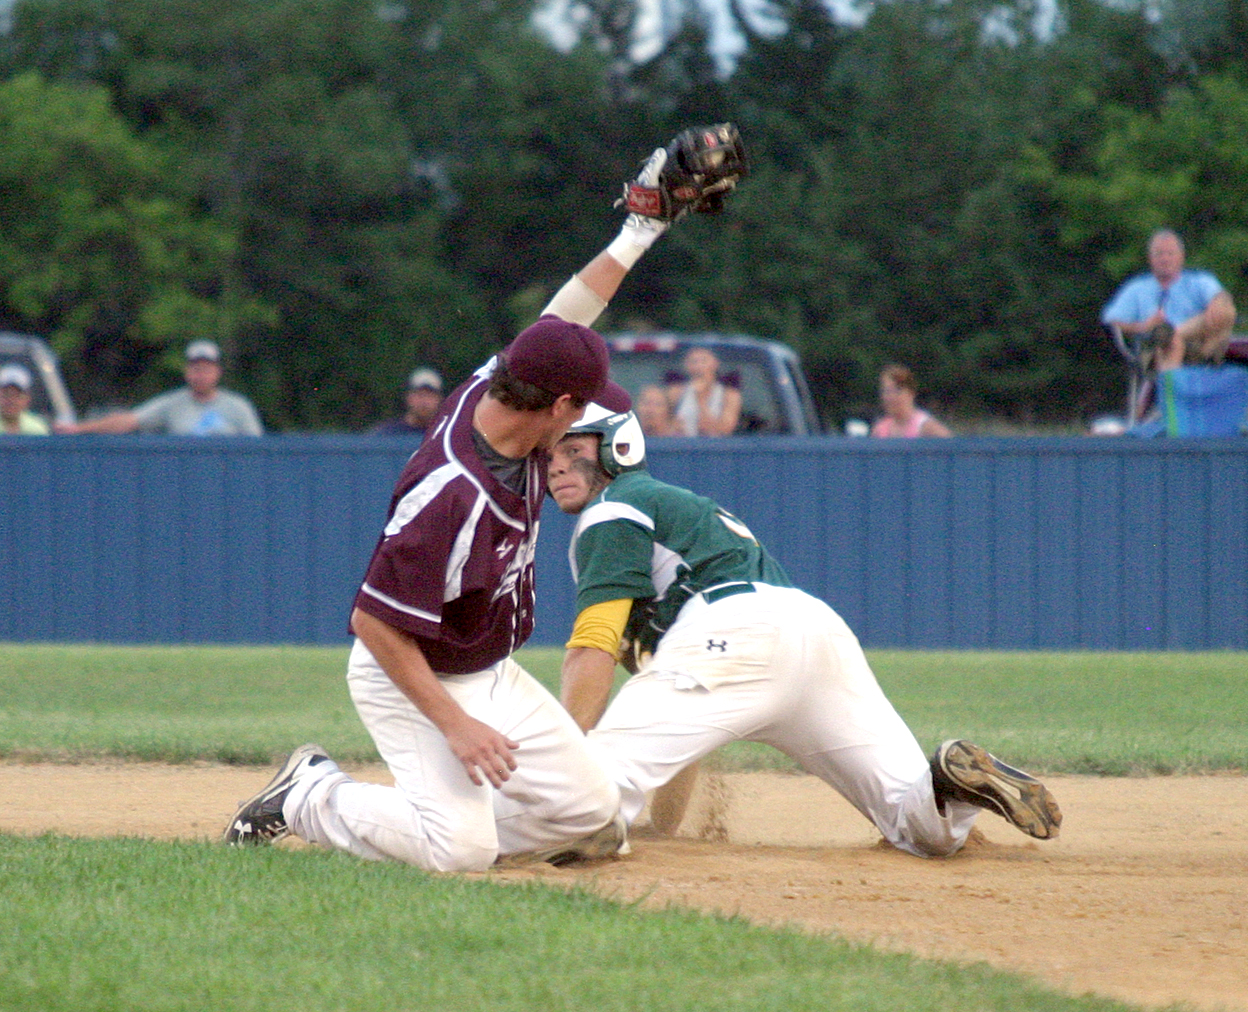 South dakota amateur baseball district score